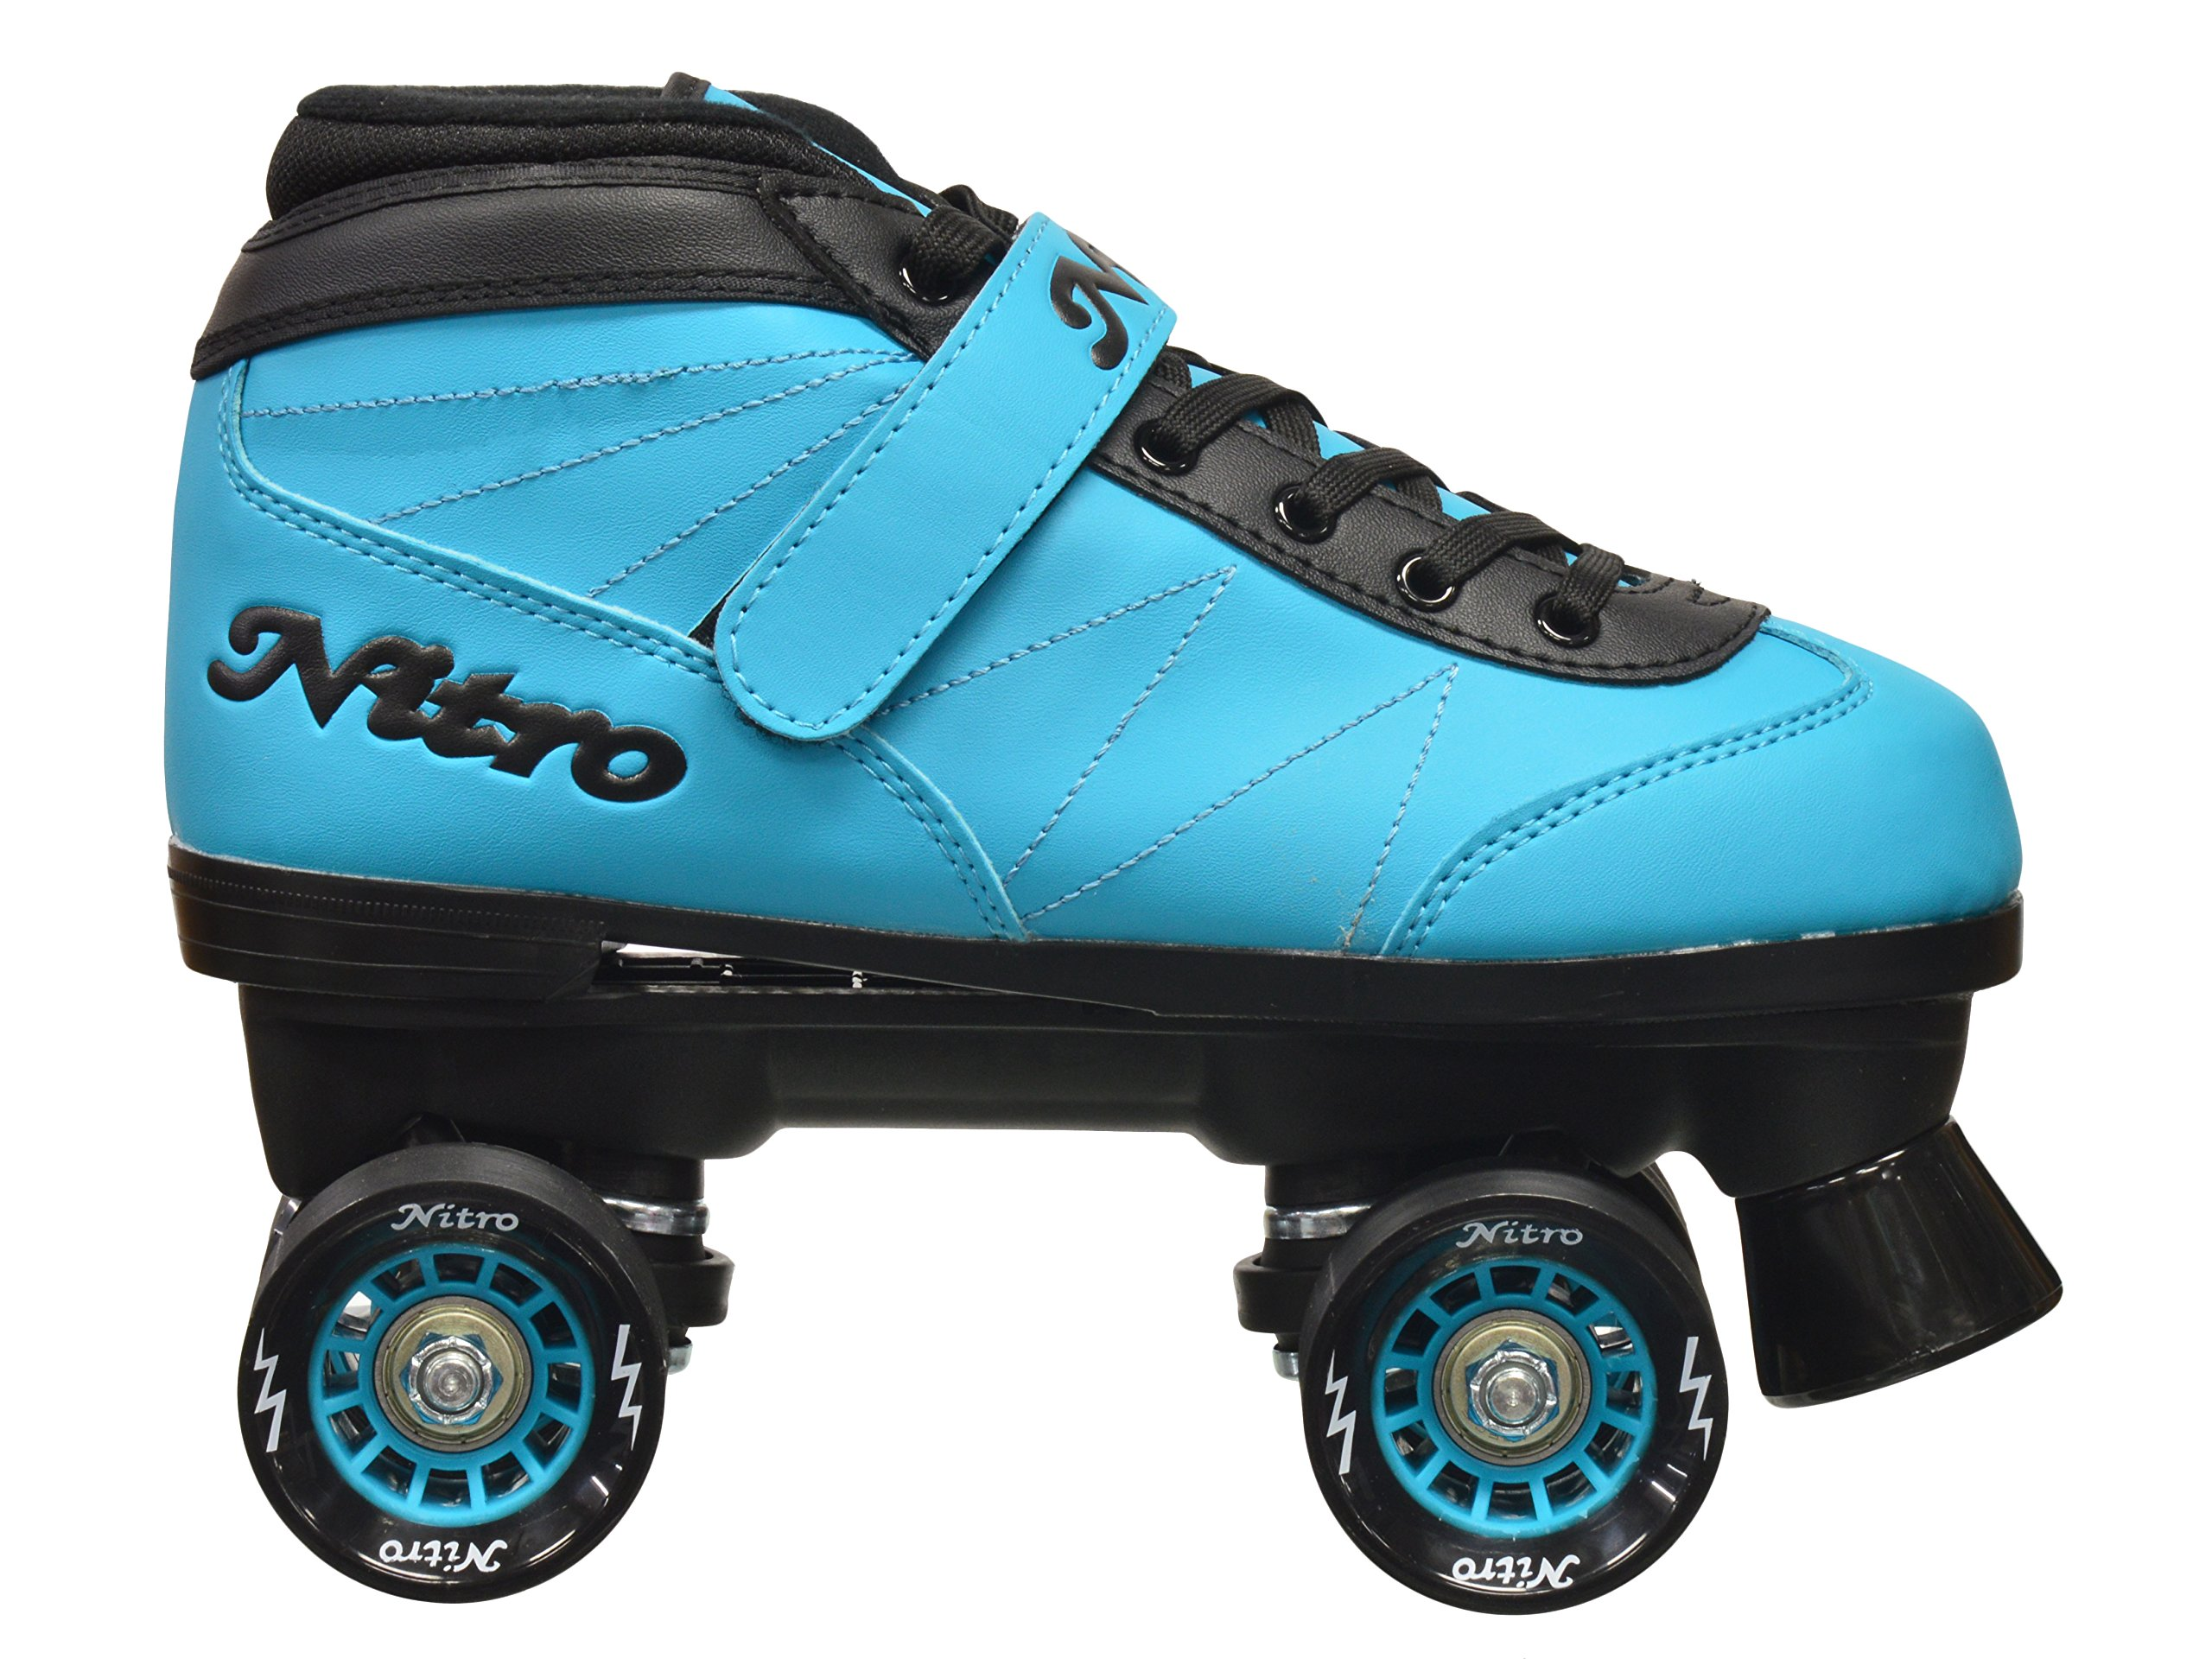 New! Epic Nitro Turbo Blue Indoor / Outdoor Quad Roller Speed Skates w/ 2 Pair of Laces (Blue & Black) (Mens 9) by Epic Skates (Image #4)